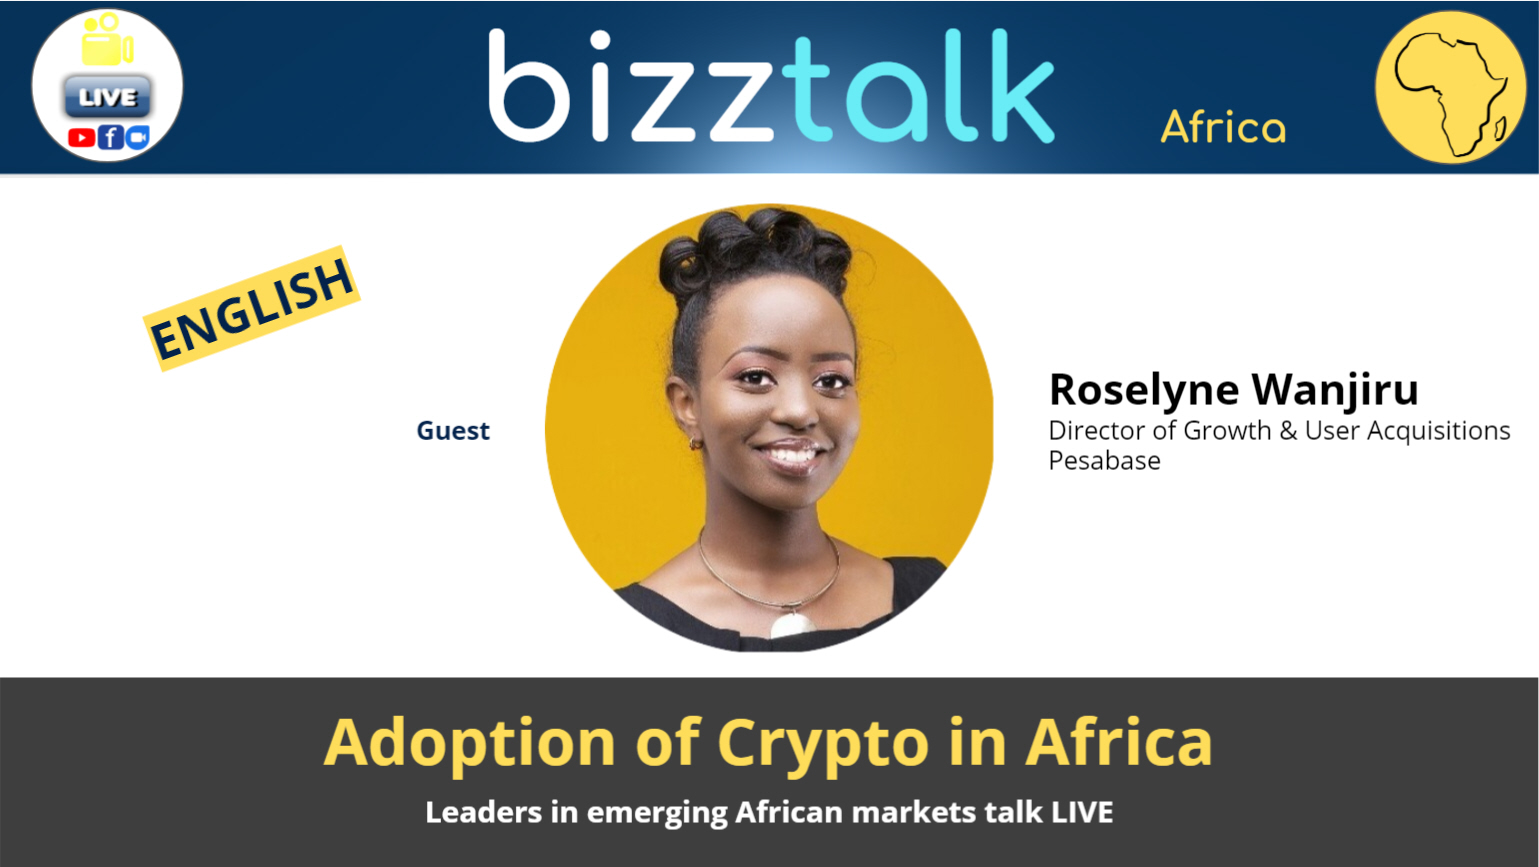 Adoption of Crypto in Africa